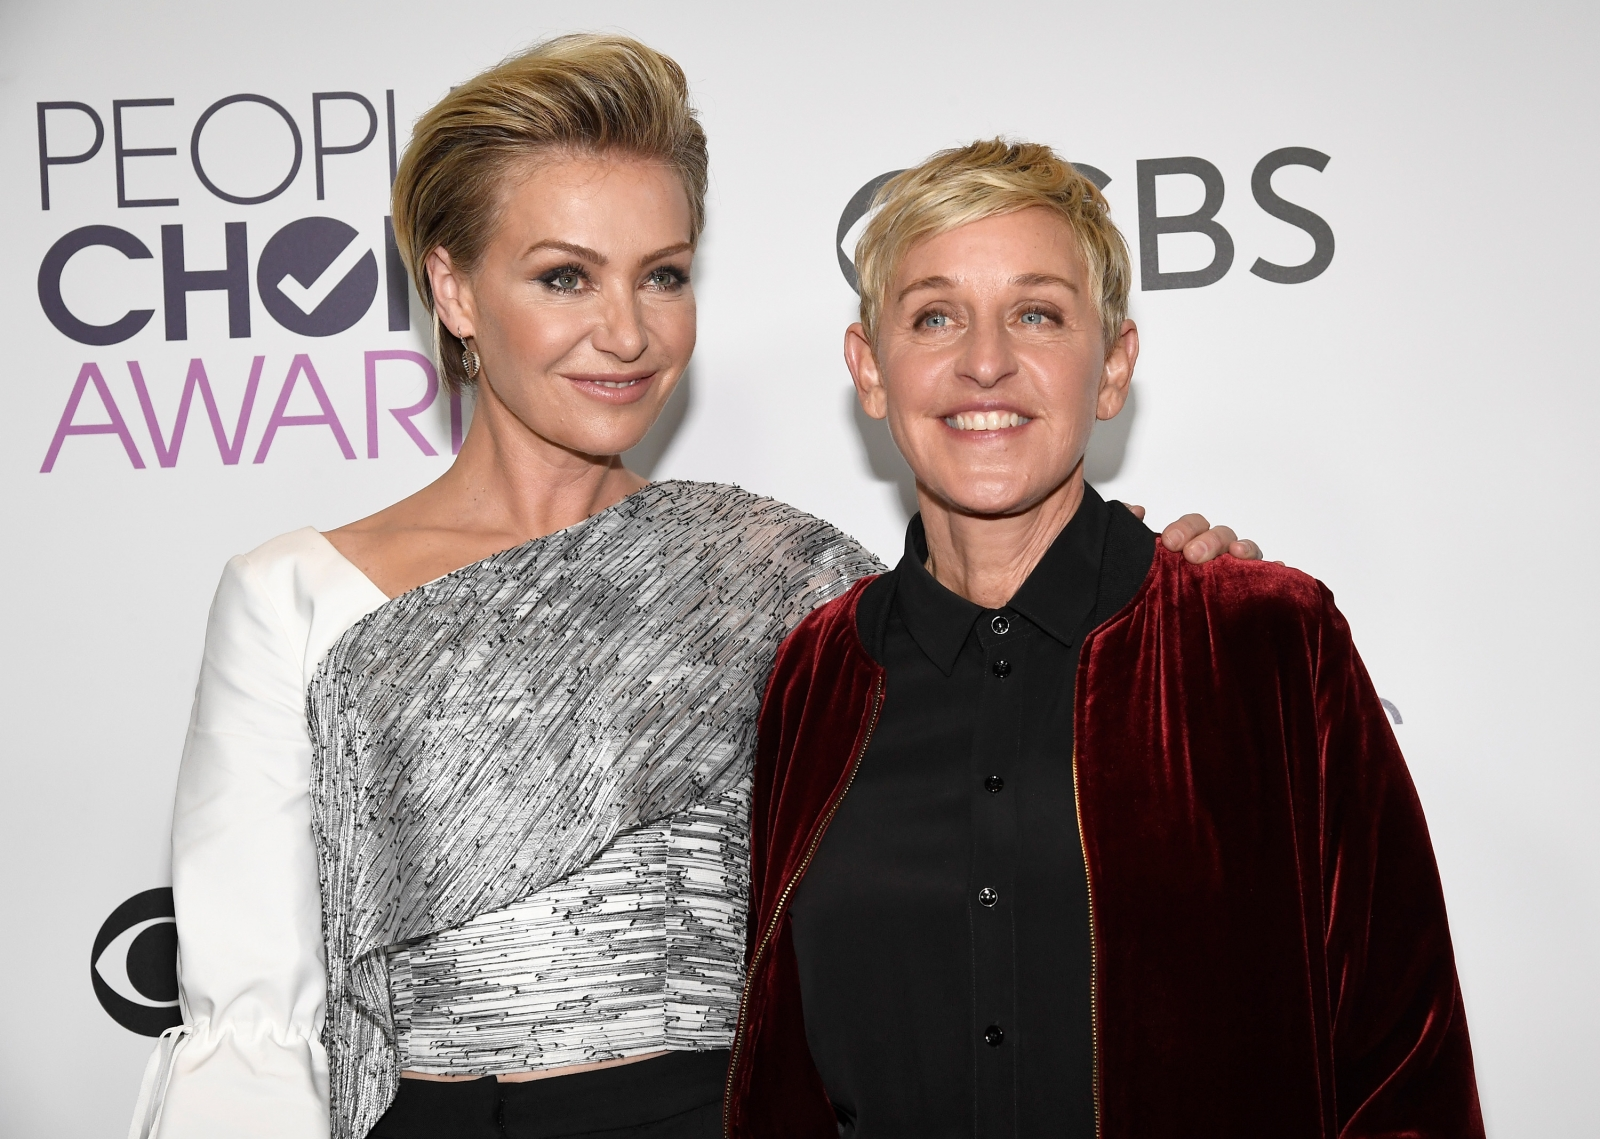 Ellen DeGeneres And Portia De Rossi Got Married In 2008 Kevork  Djansezian/Getty